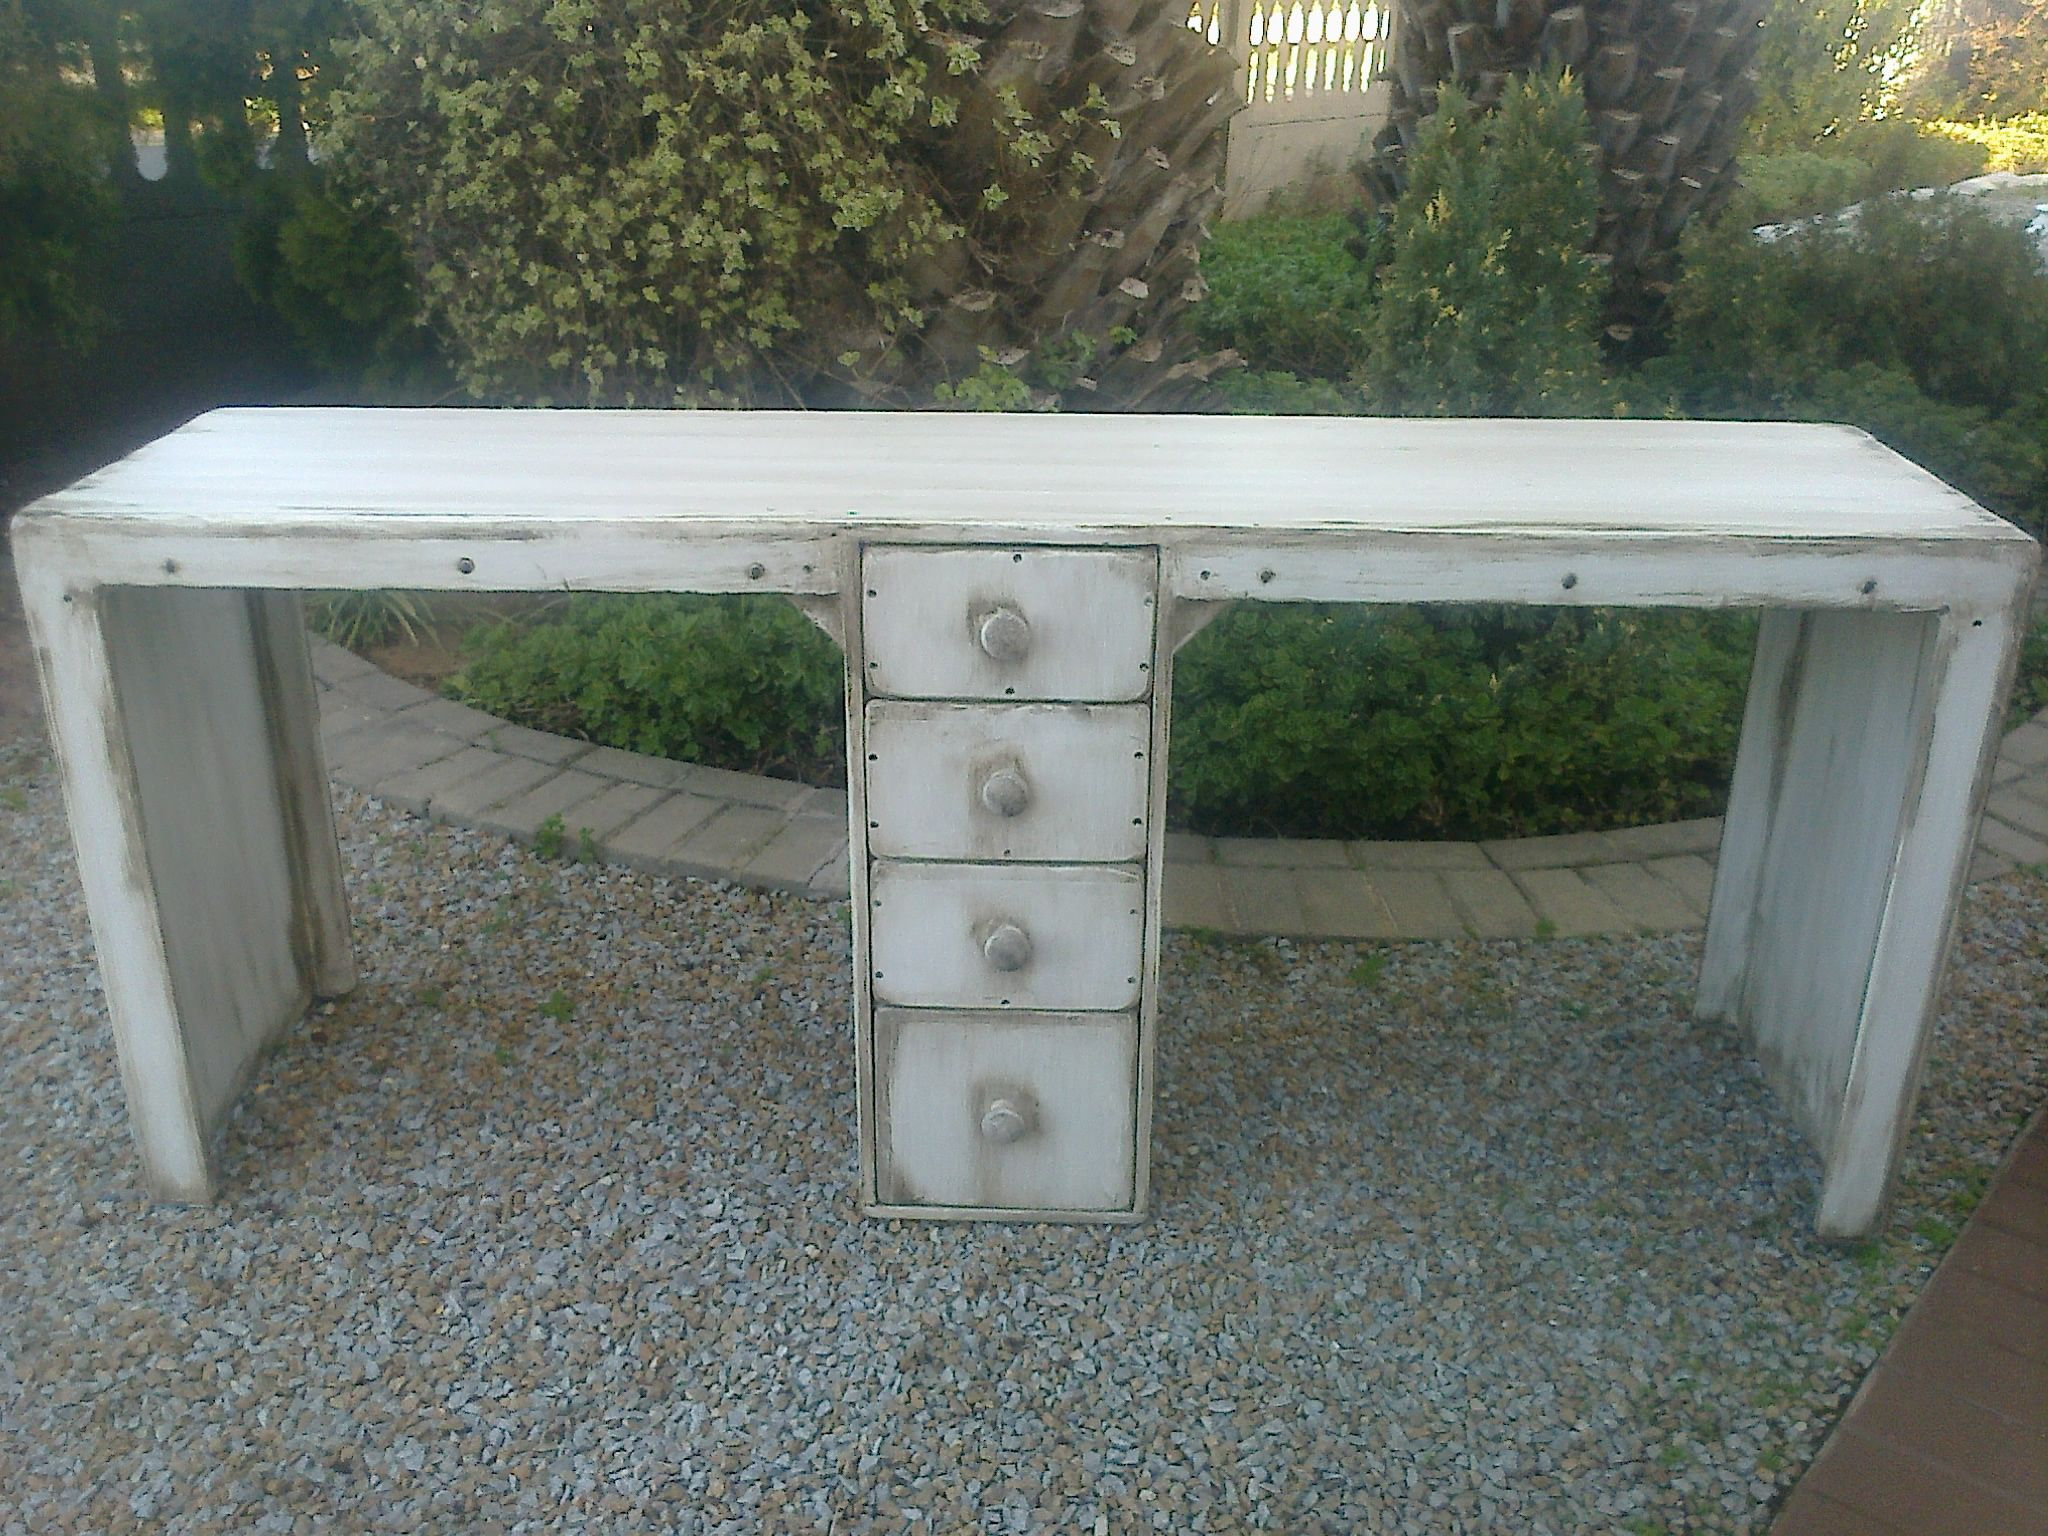 for buy triomphe paris sav goods today table station manicure stations sale standish styling salon